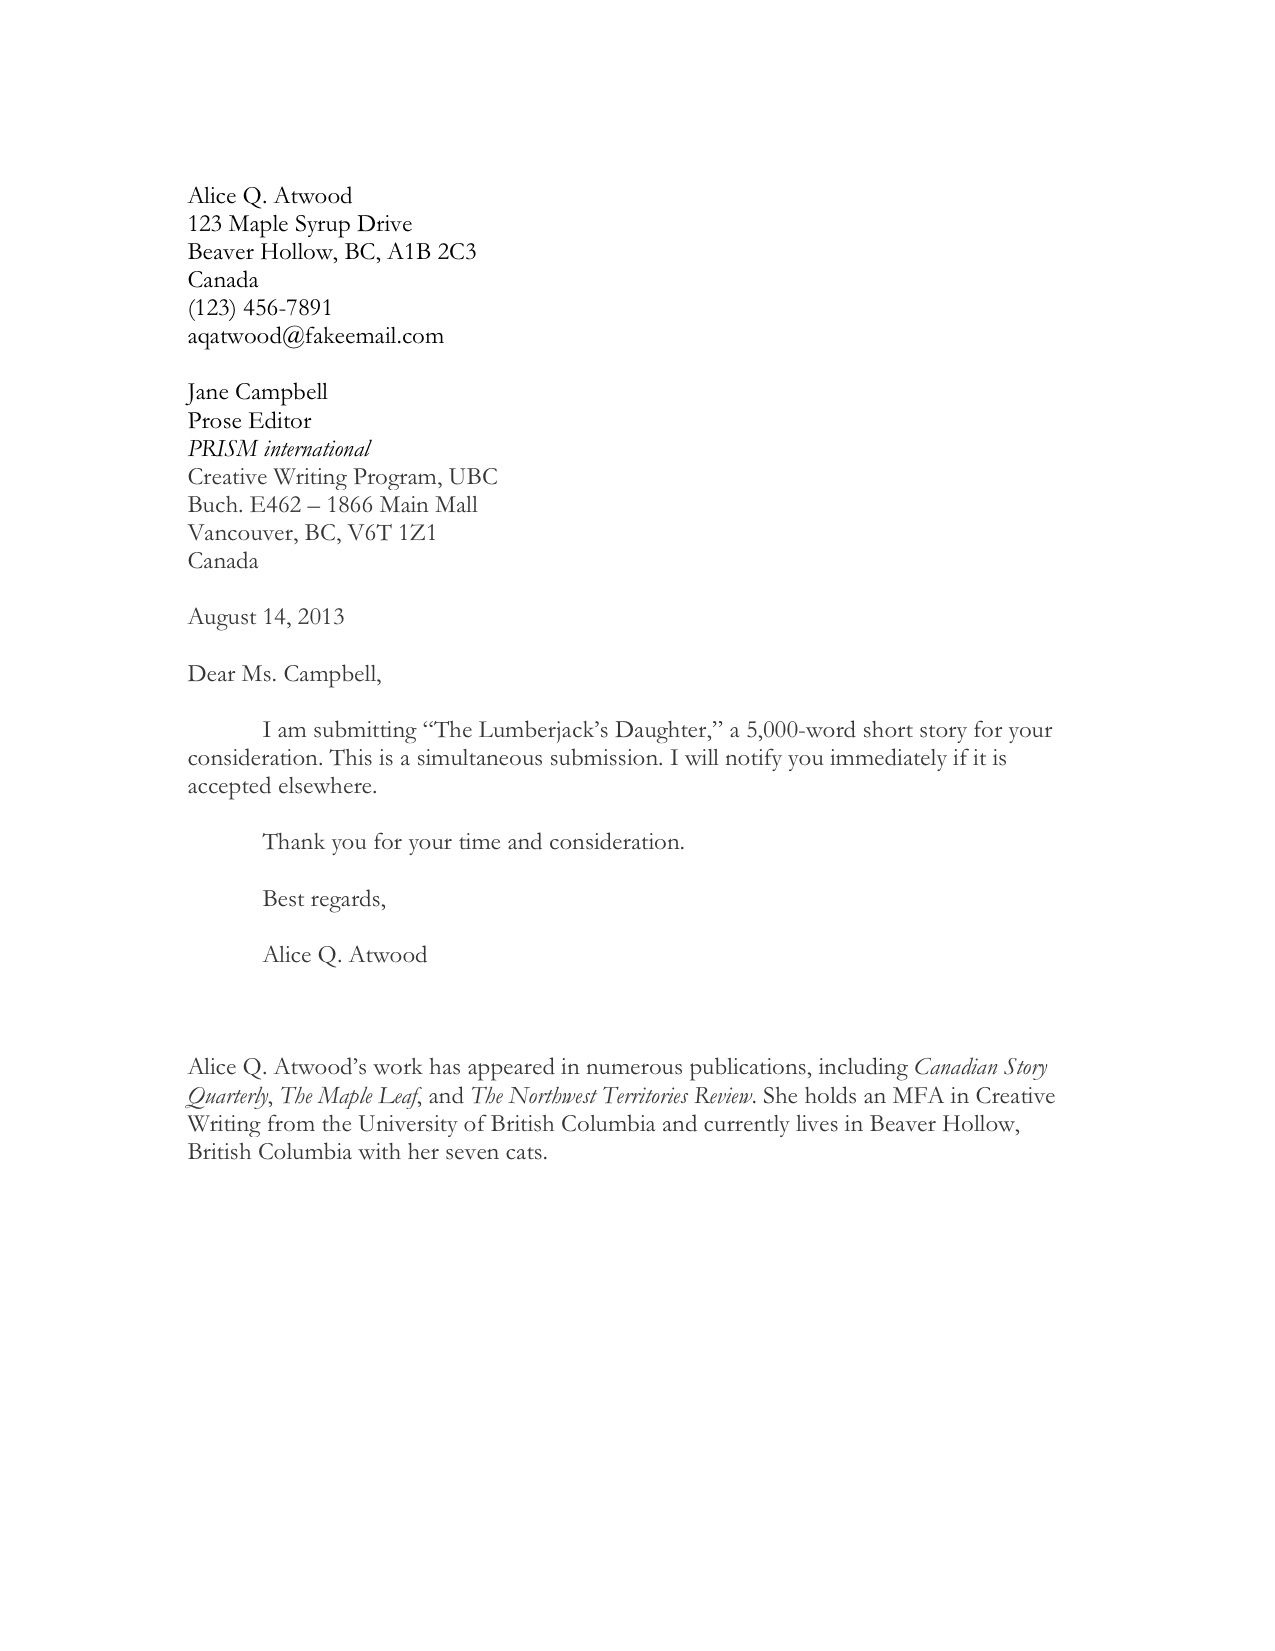 Application letter sample word for Exemple of cover letter